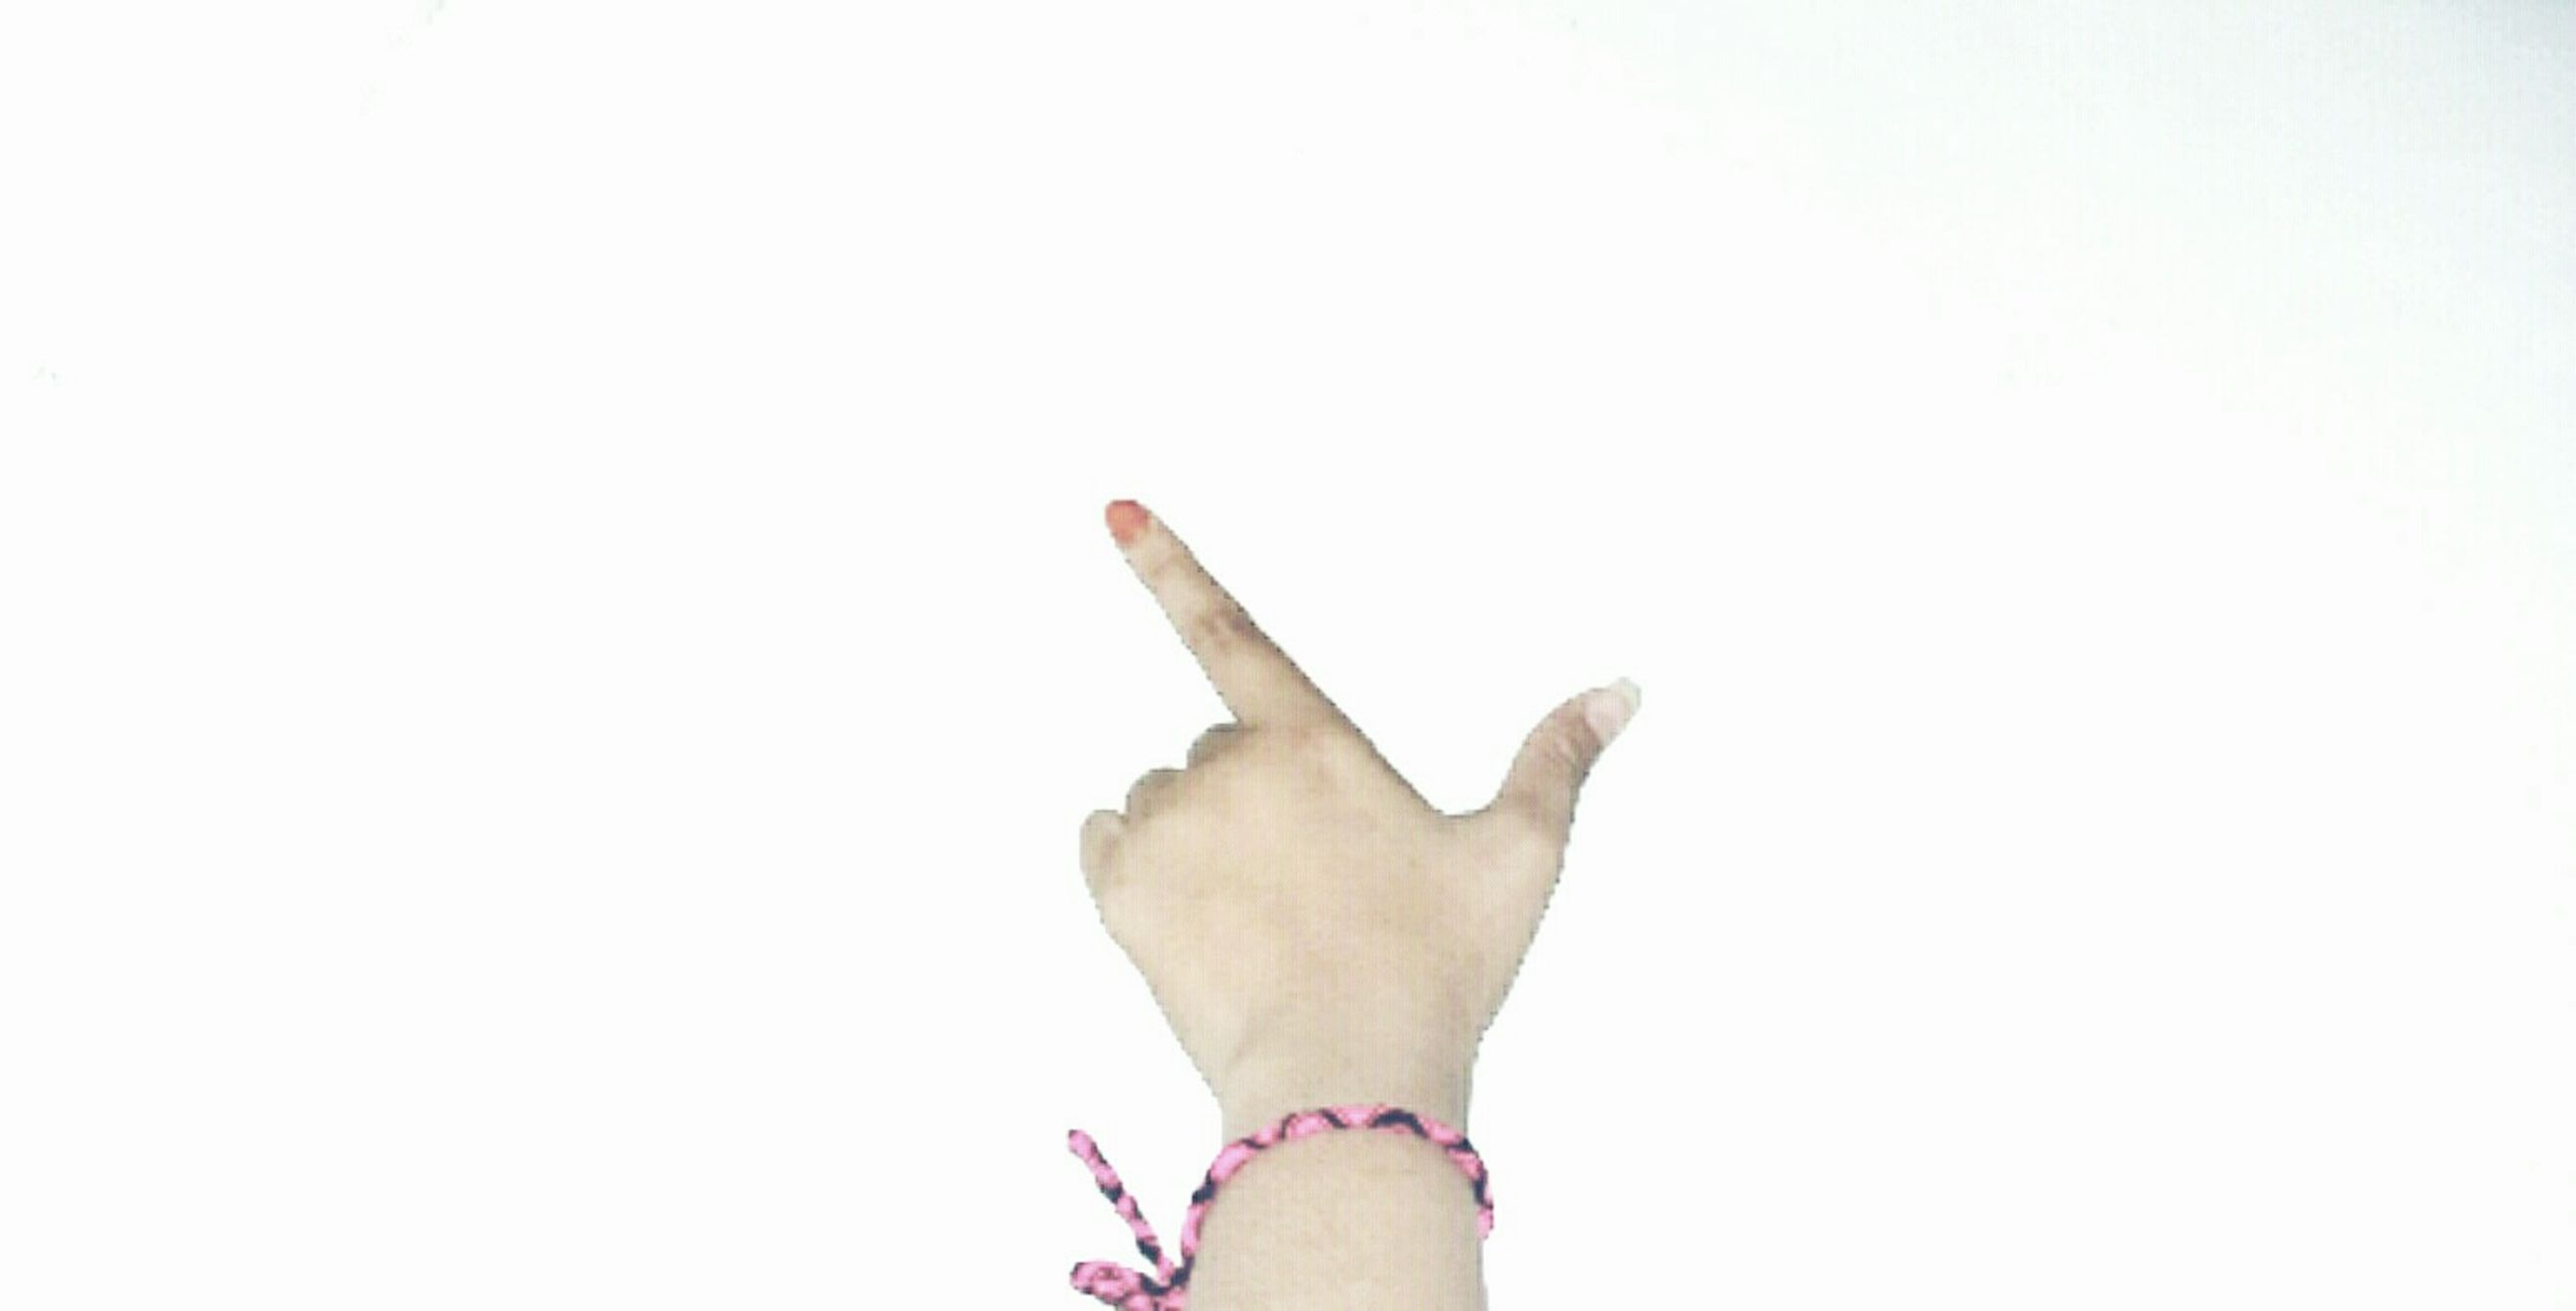 person, part of, studio shot, holding, copy space, human finger, white background, cropped, personal perspective, lifestyles, unrecognizable person, close-up, showing, leisure activity, cut out, single object